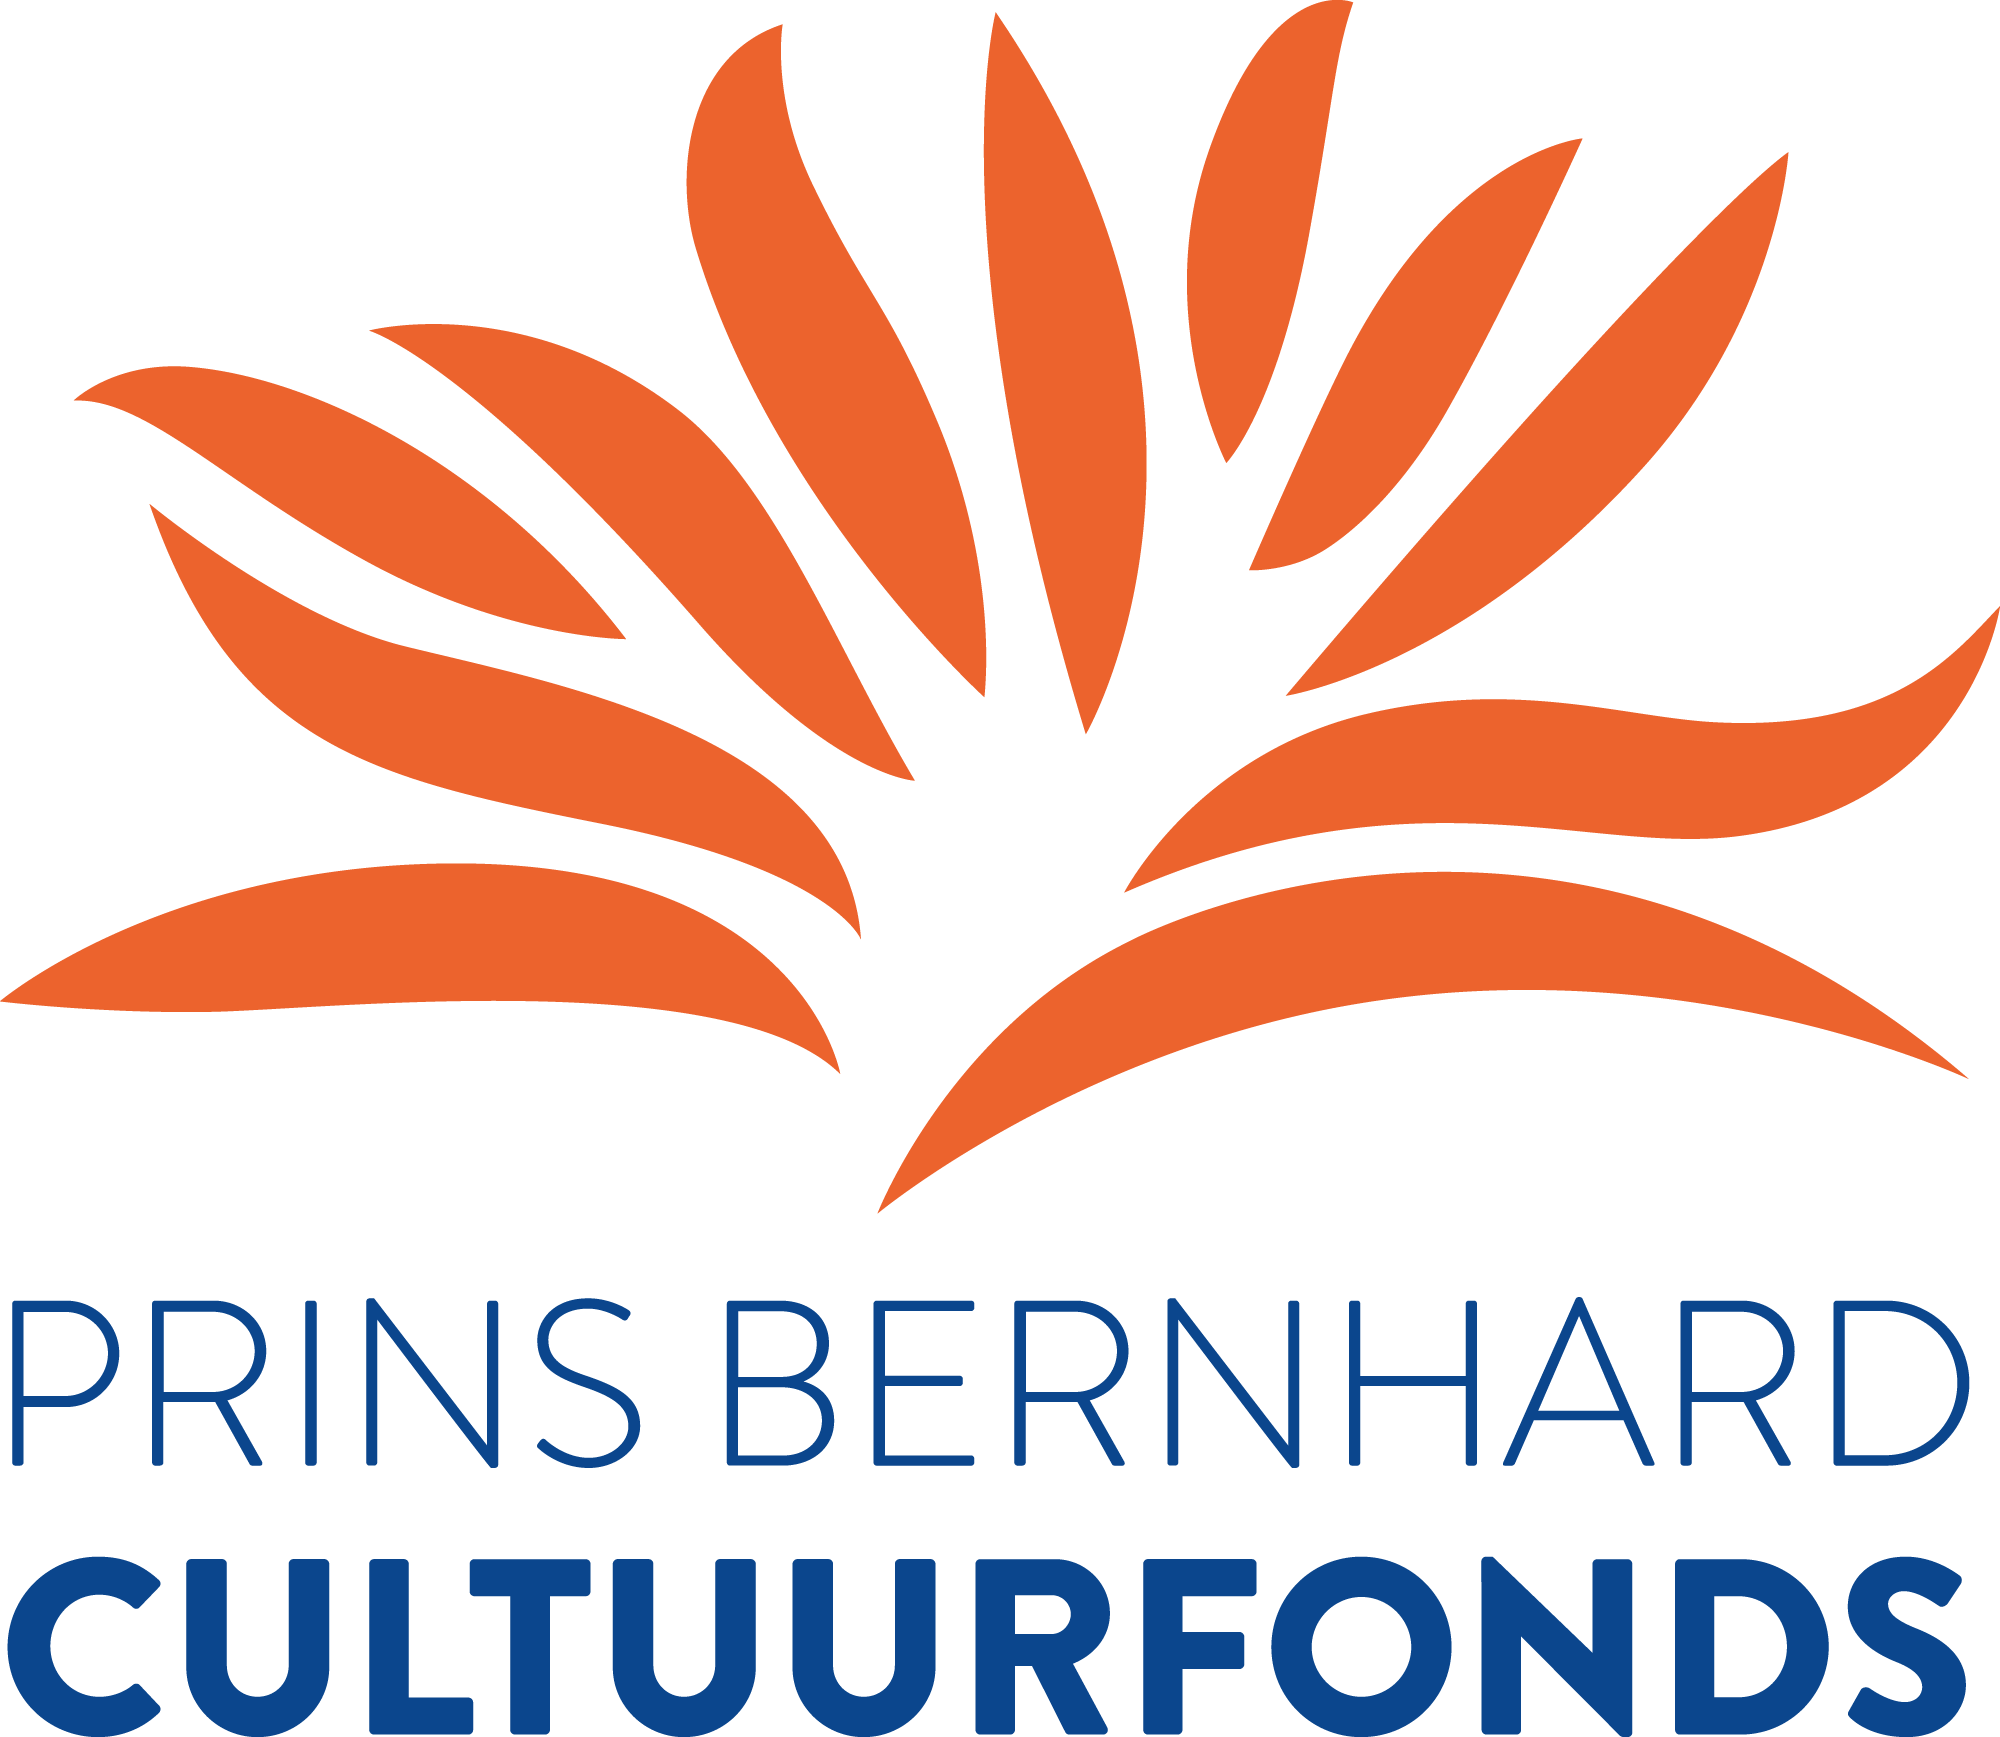 Prins-Bernhard-Cultuurfonds-full-color